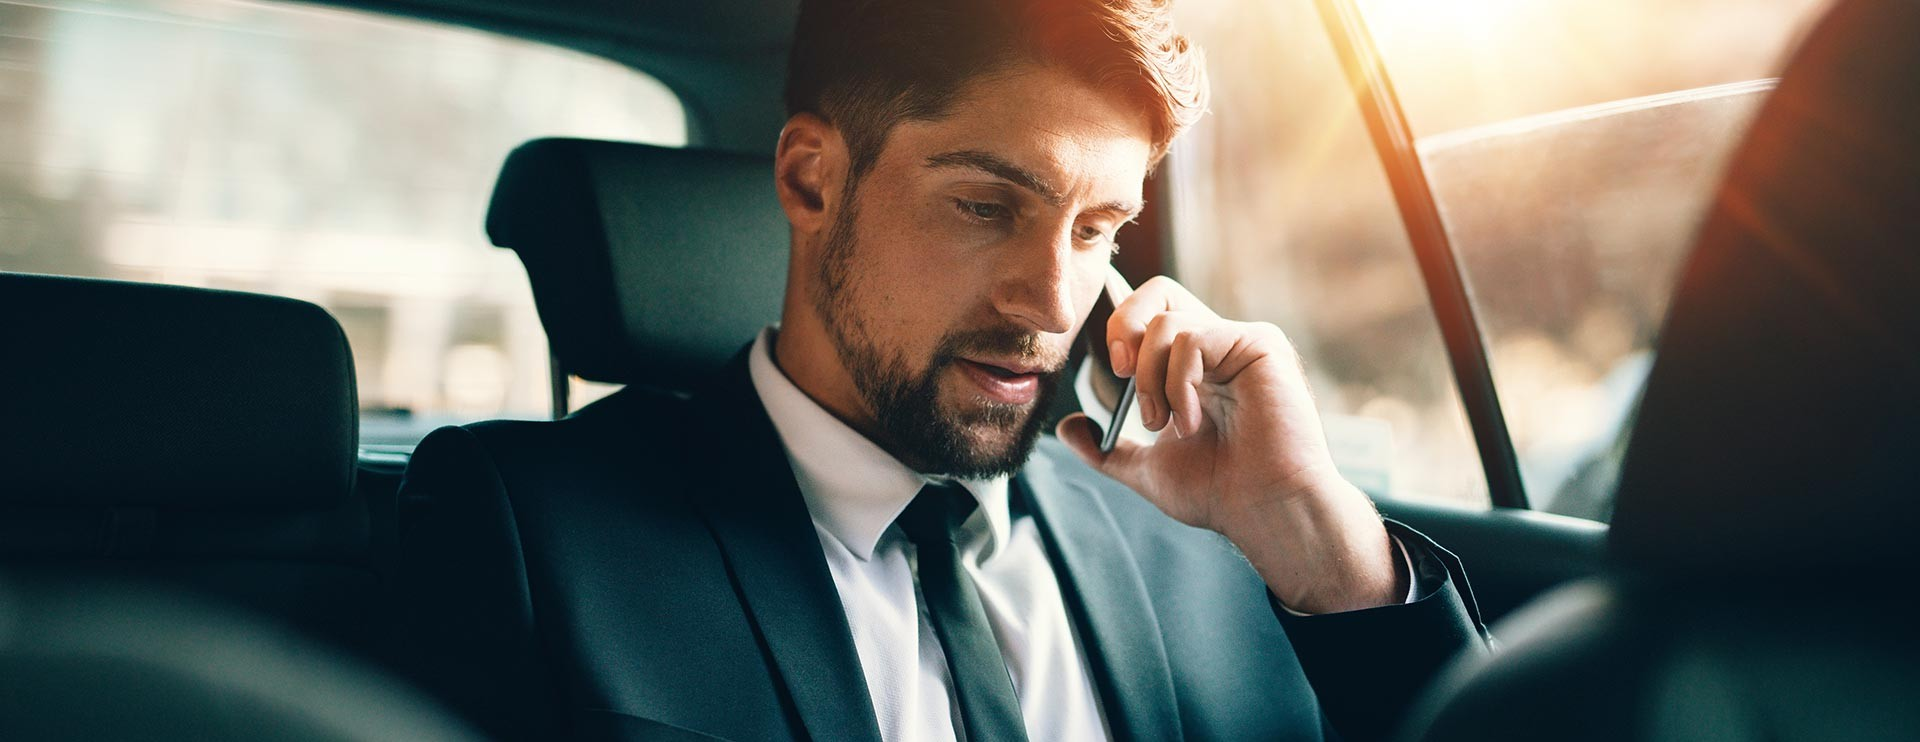 Businessman on the phone travelling in a car